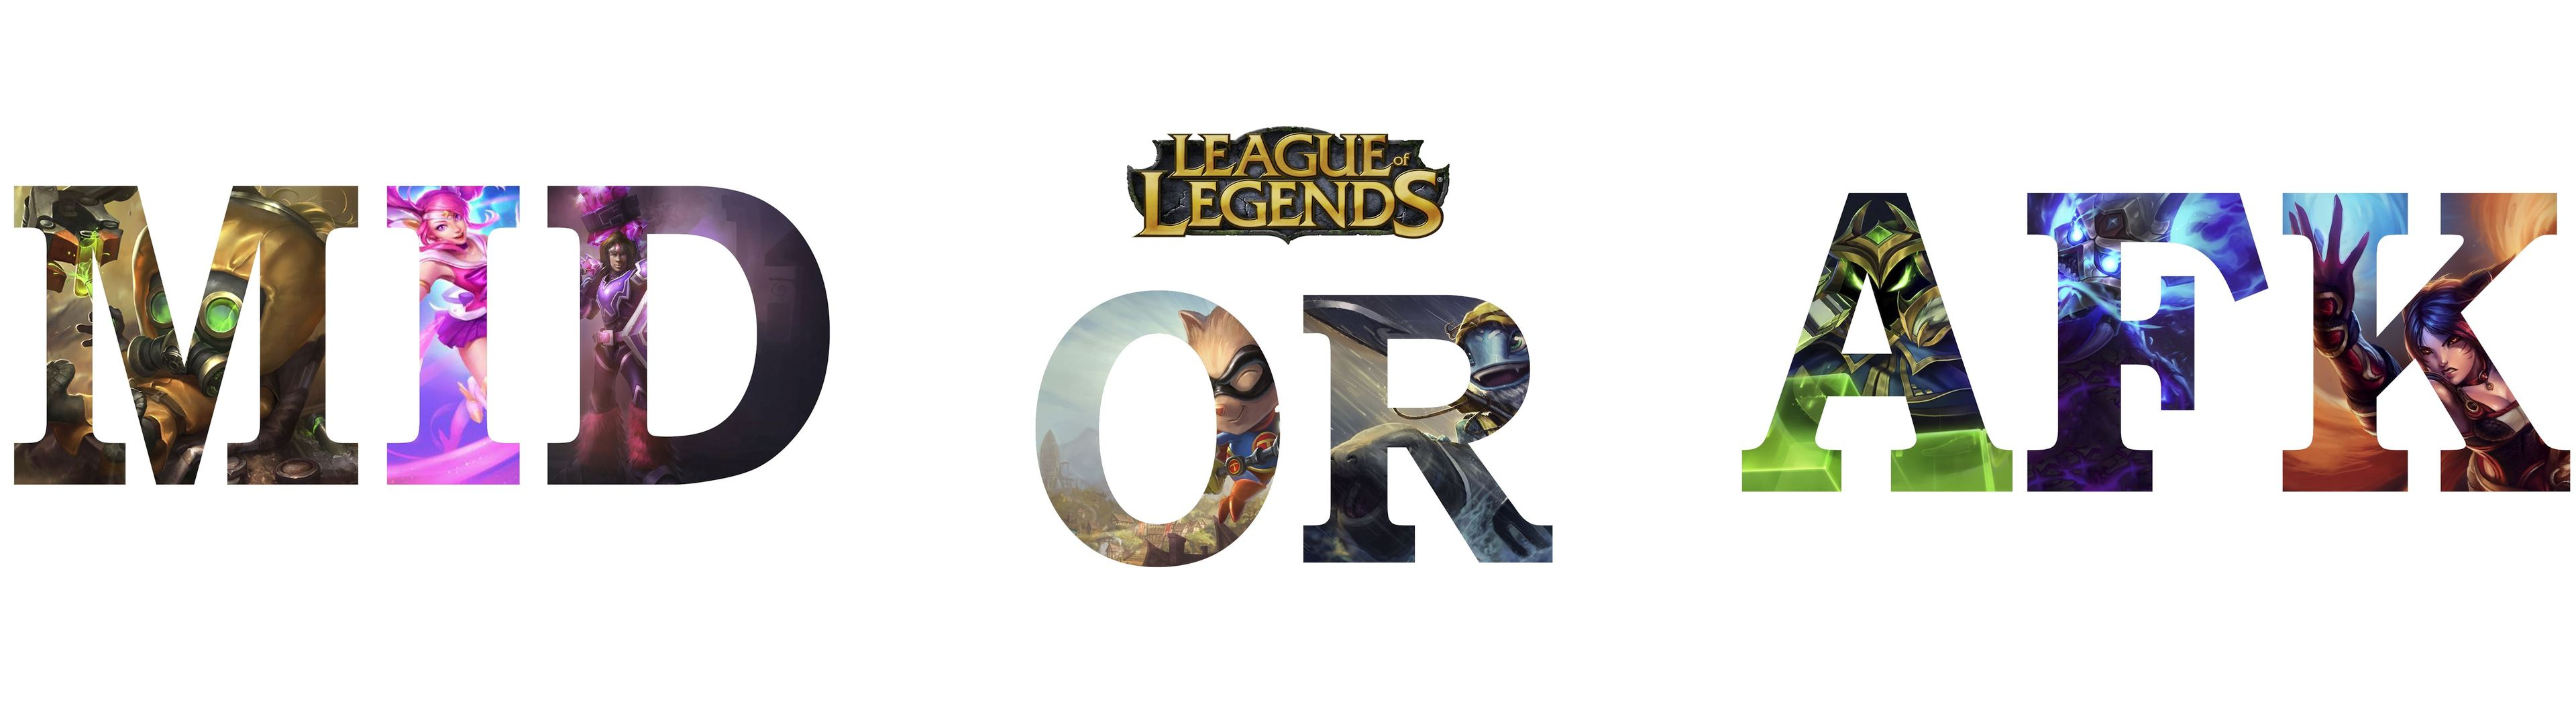 WallpaperFusion-league-of-legends-mid-or-afk-Original-6880x1440.jpg